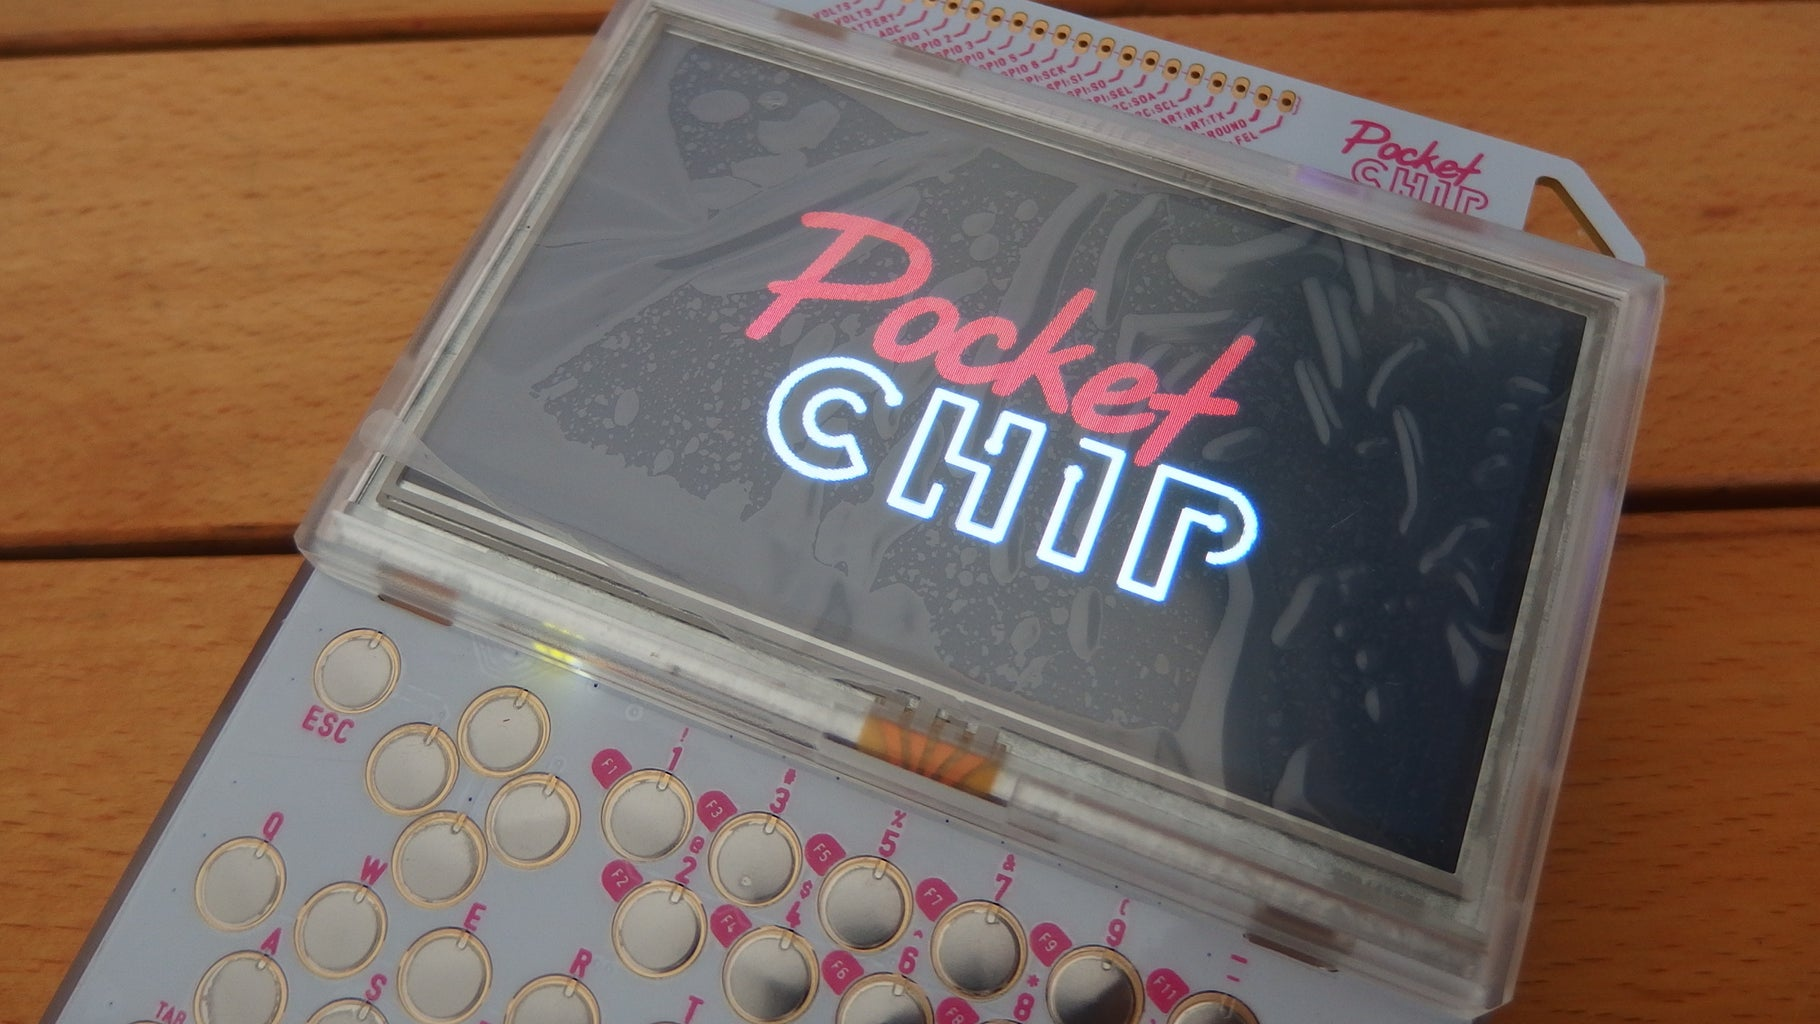 The Features of CHIP and Pocket CHIP